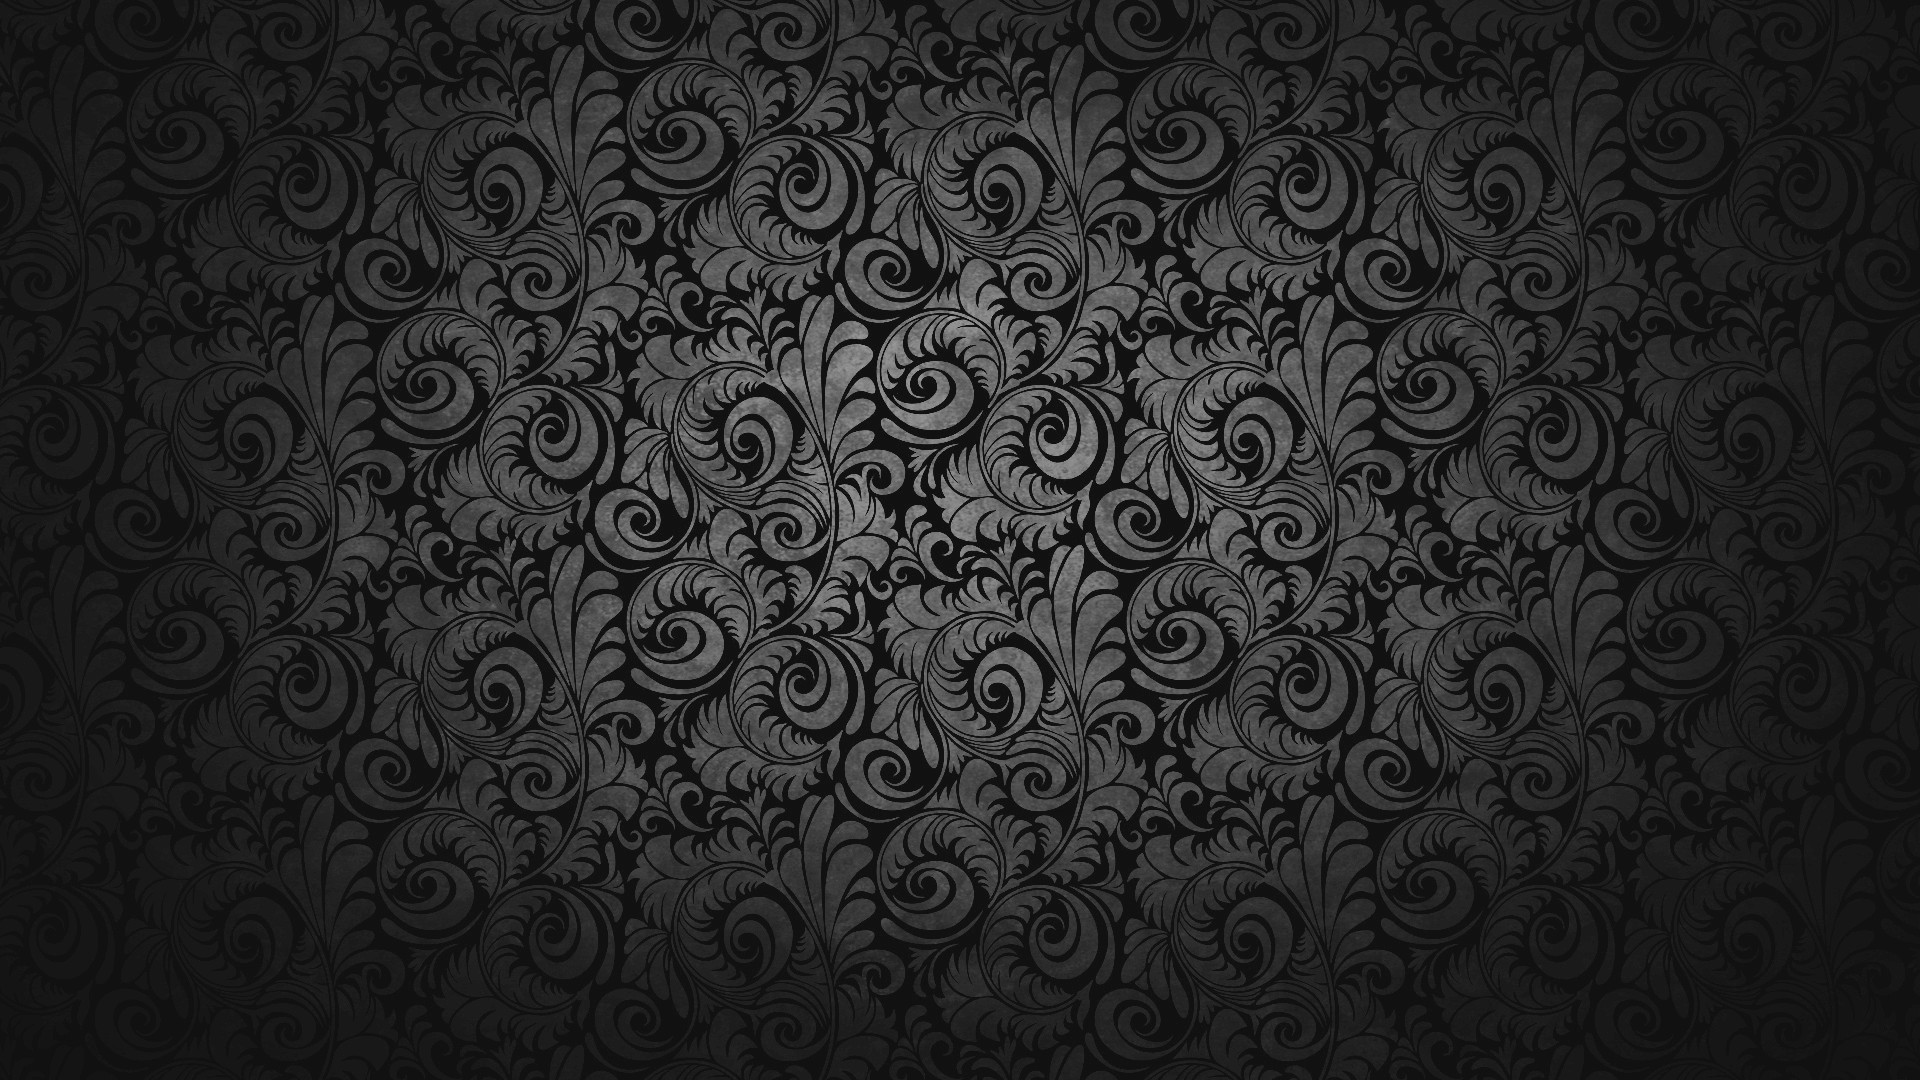 1920x1080 black-abstract-hd-wallpaper-1080p.jpg | inkt|art